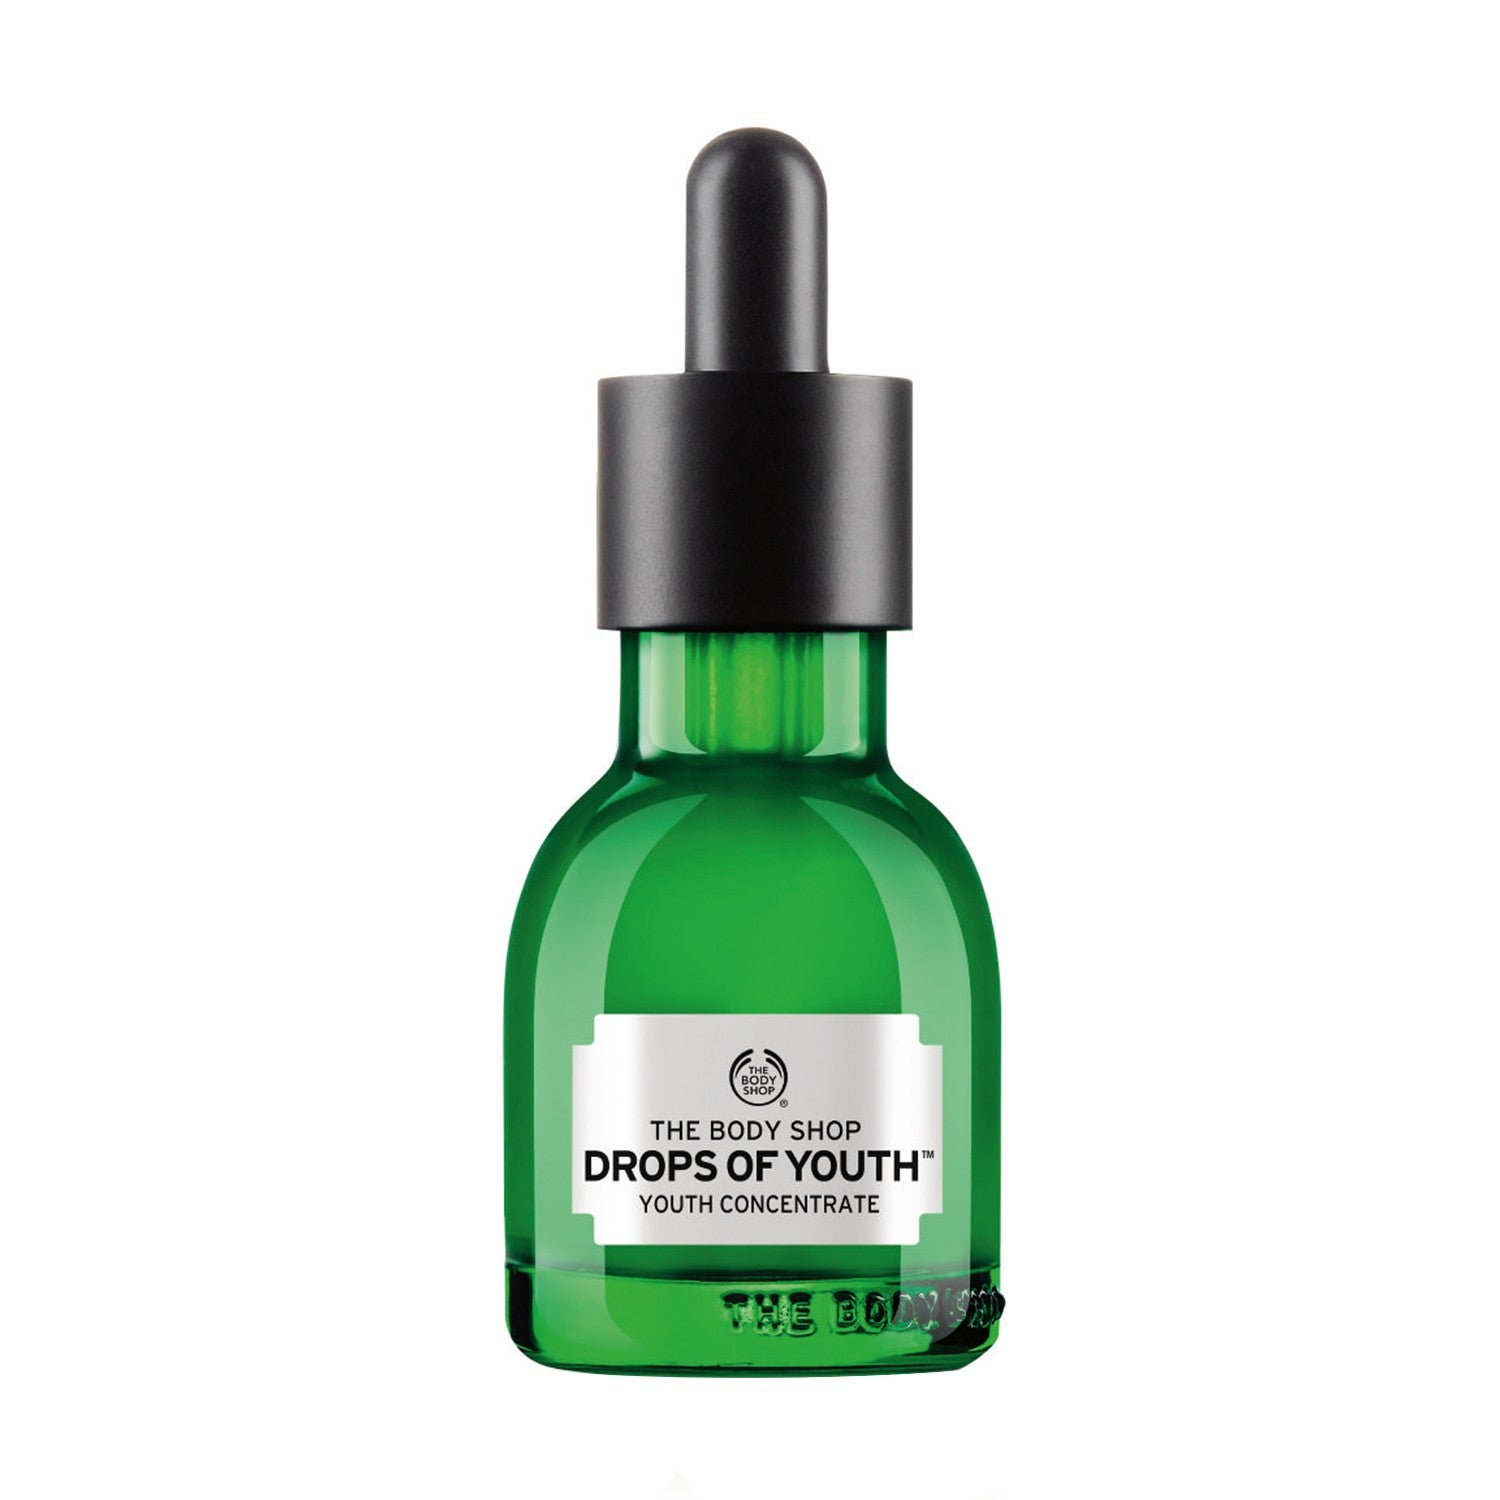 body shop drops of youth cream review